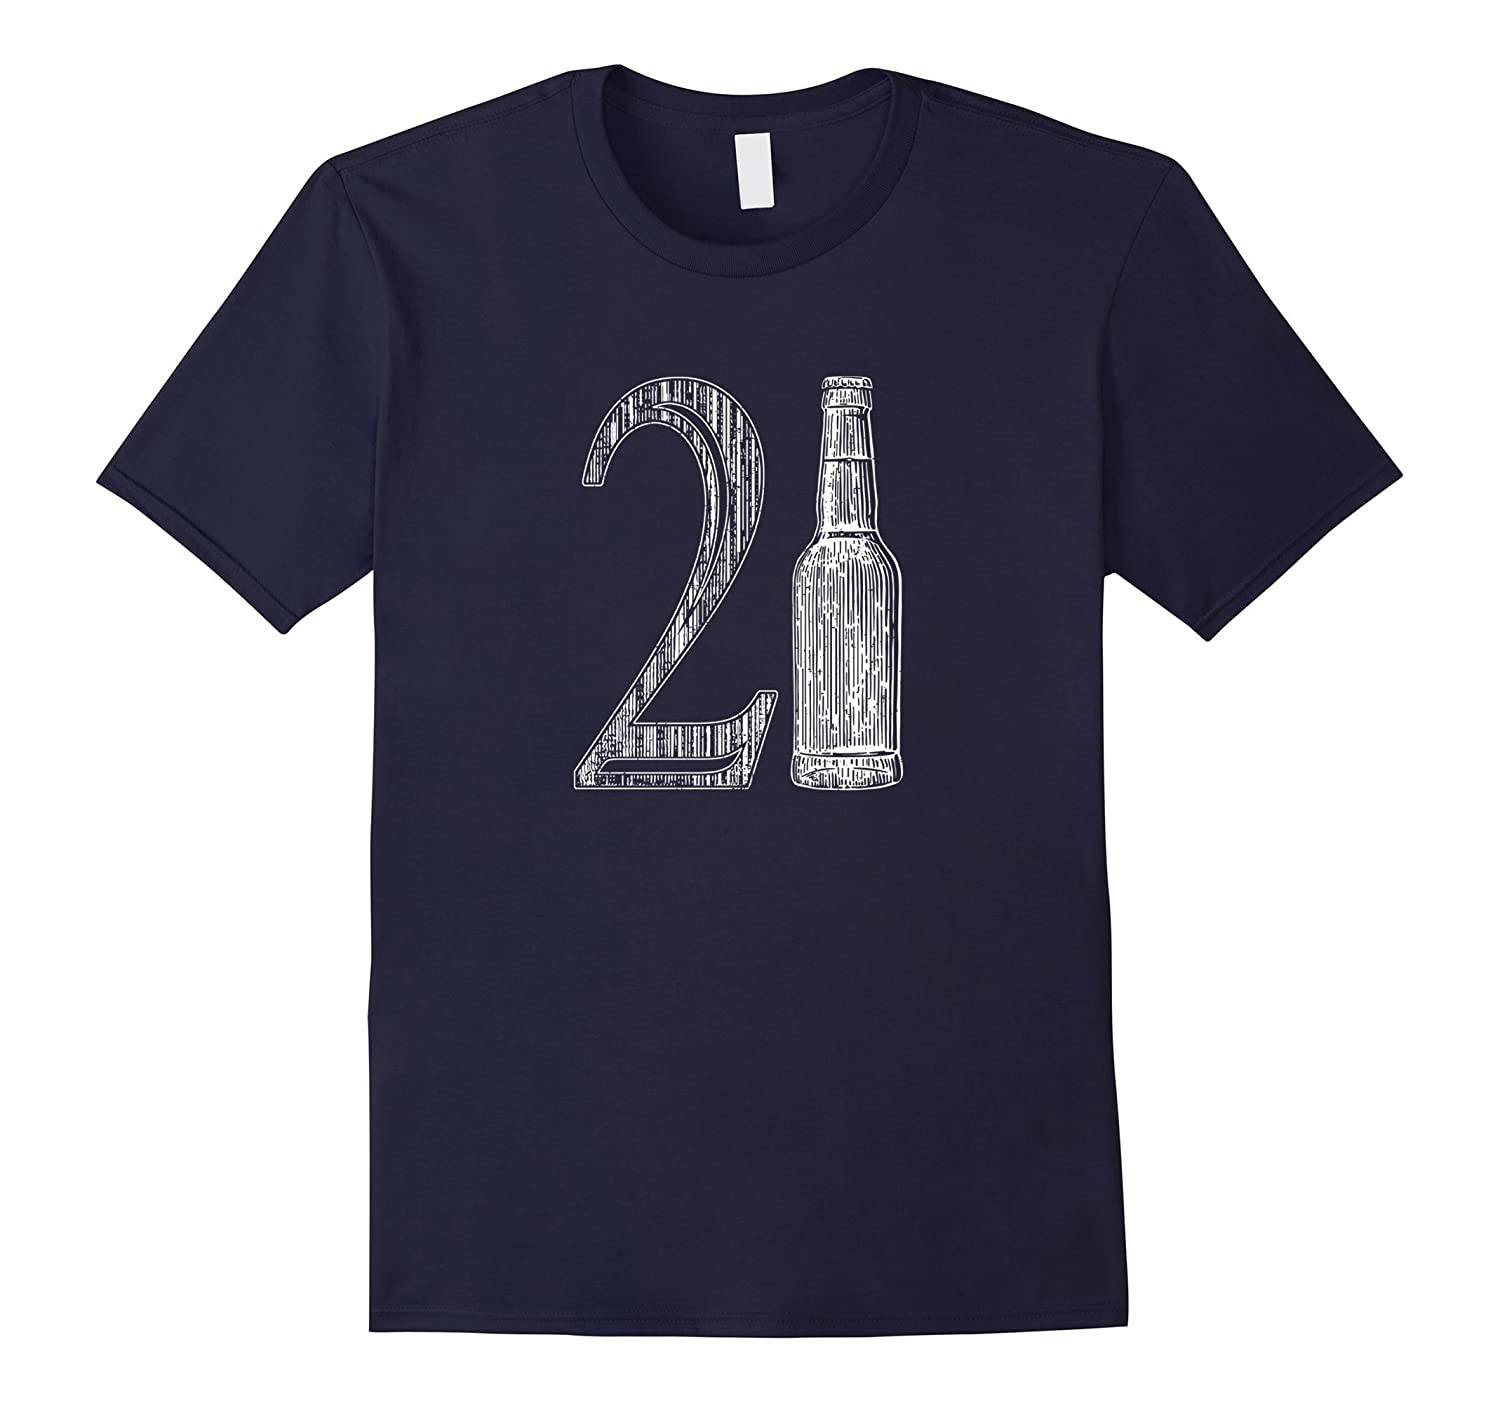 21st Birthday, 21 Years Old, Beer Drinking - T-shirt-TH